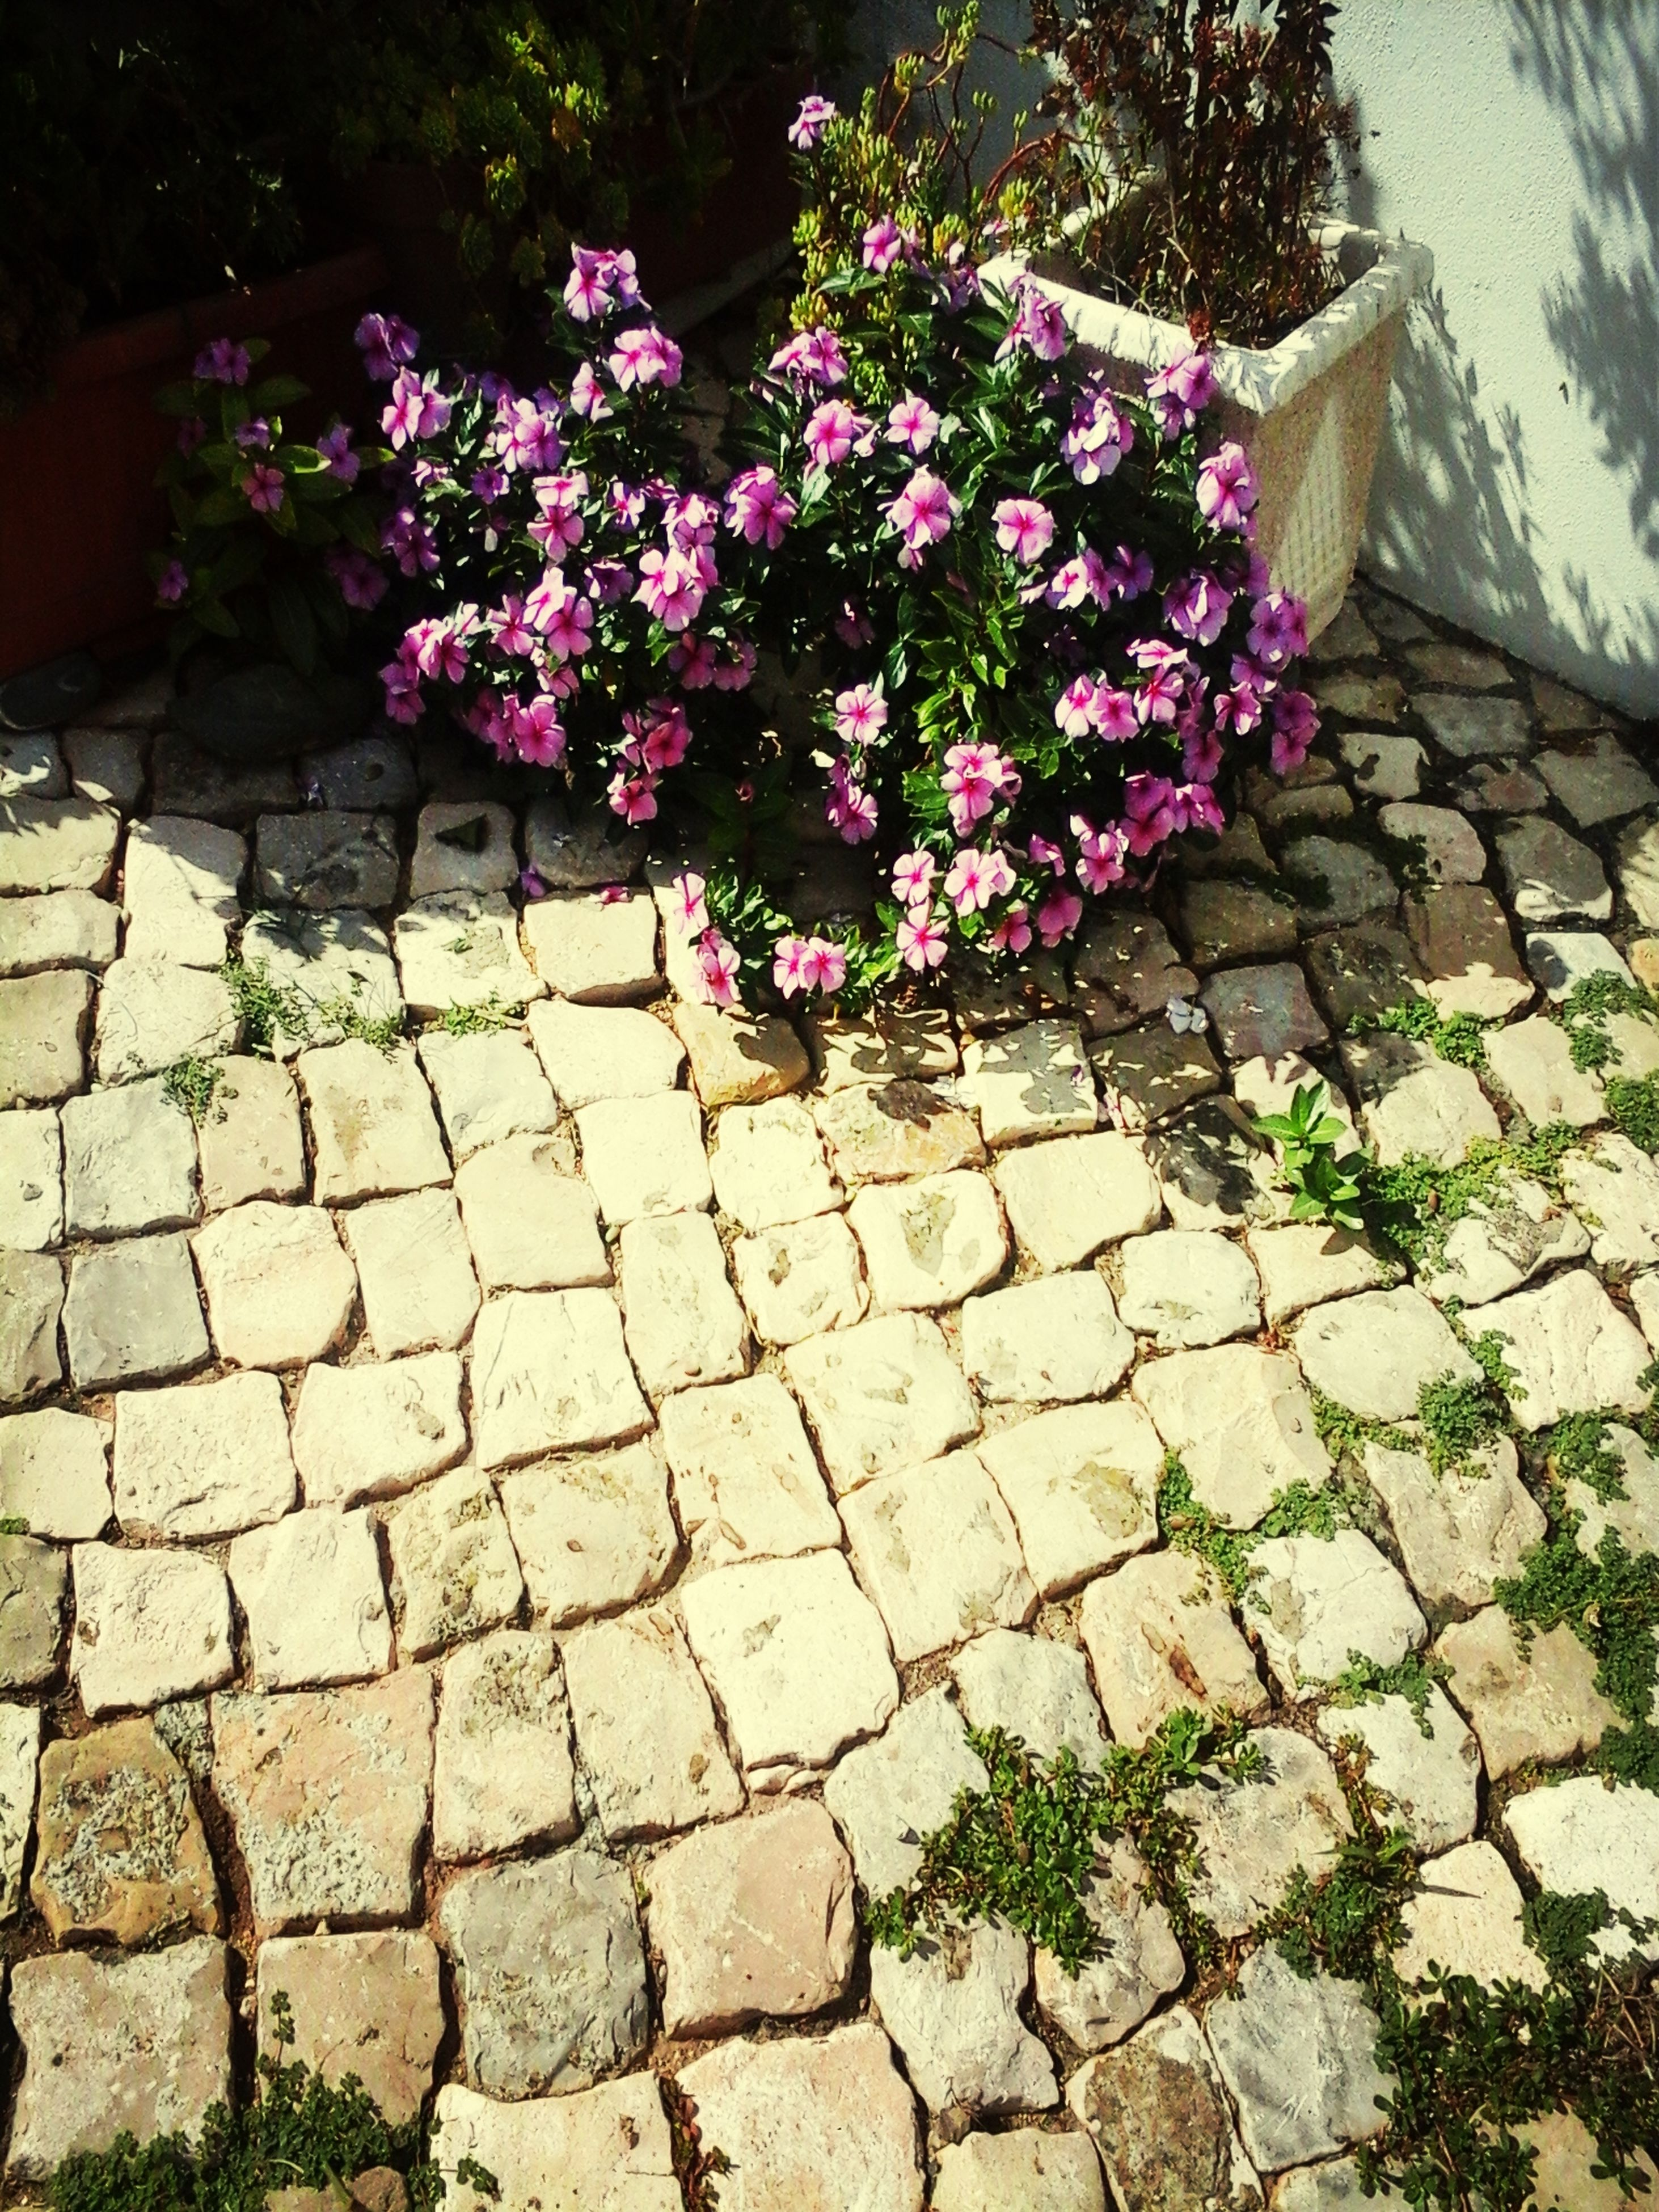 flower, stone wall, plant, growth, cobblestone, nature, fragility, pink color, wall - building feature, outdoors, freshness, day, paving stone, brick wall, beauty in nature, footpath, no people, sunlight, high angle view, blooming